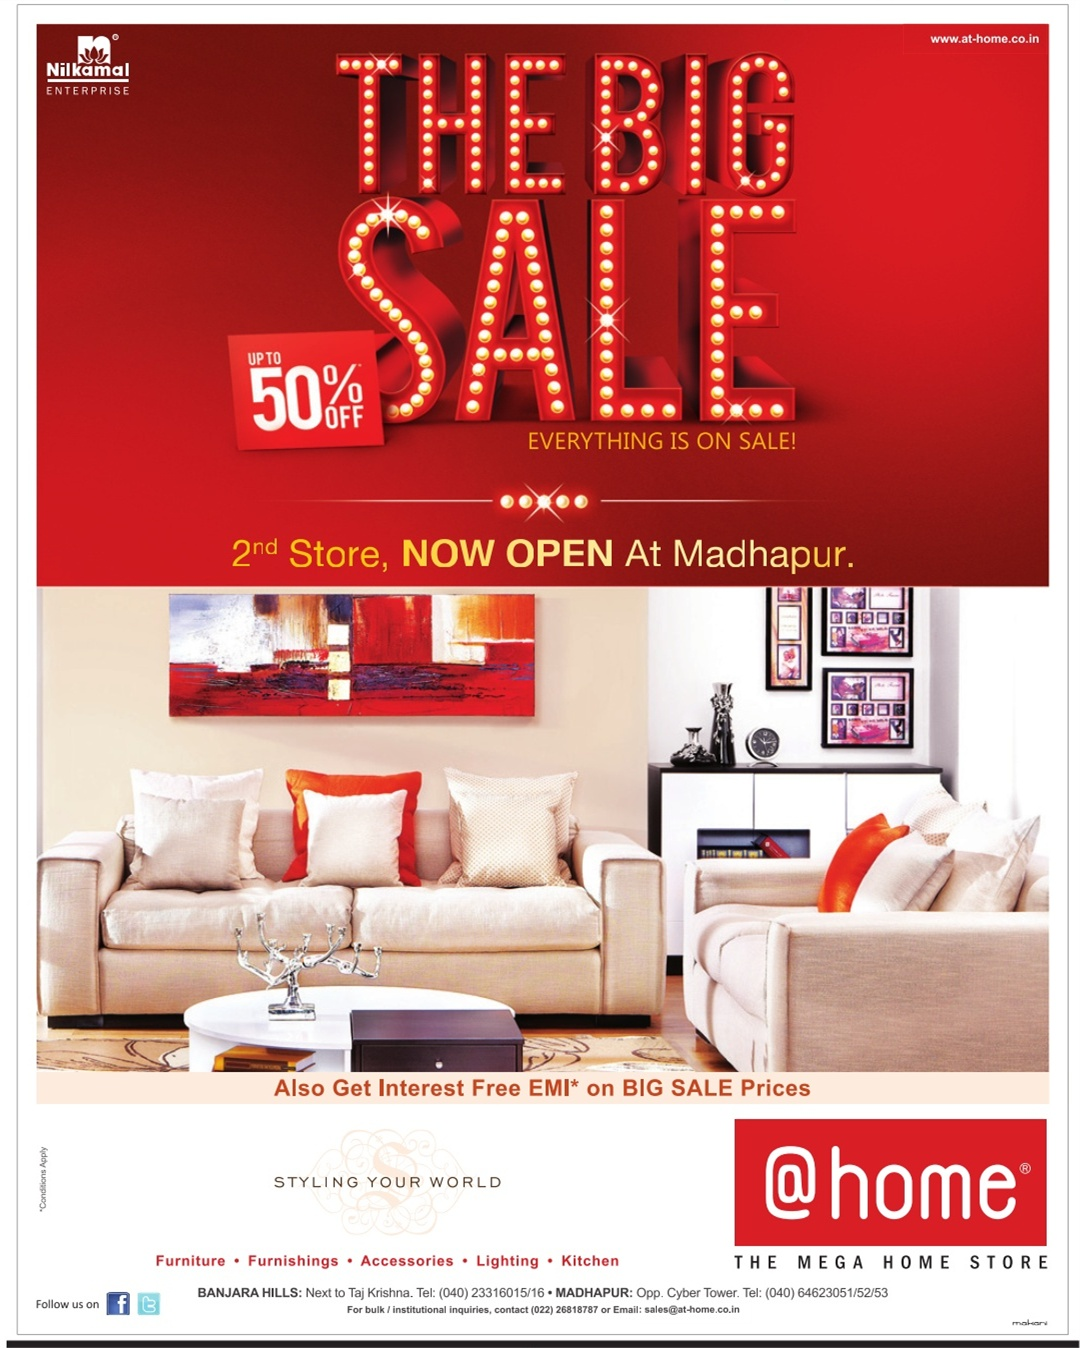 When Are Furniture Sales: THE BIG SALE UPTO 50% OFF On FURNITURE At @home, Hyderabad